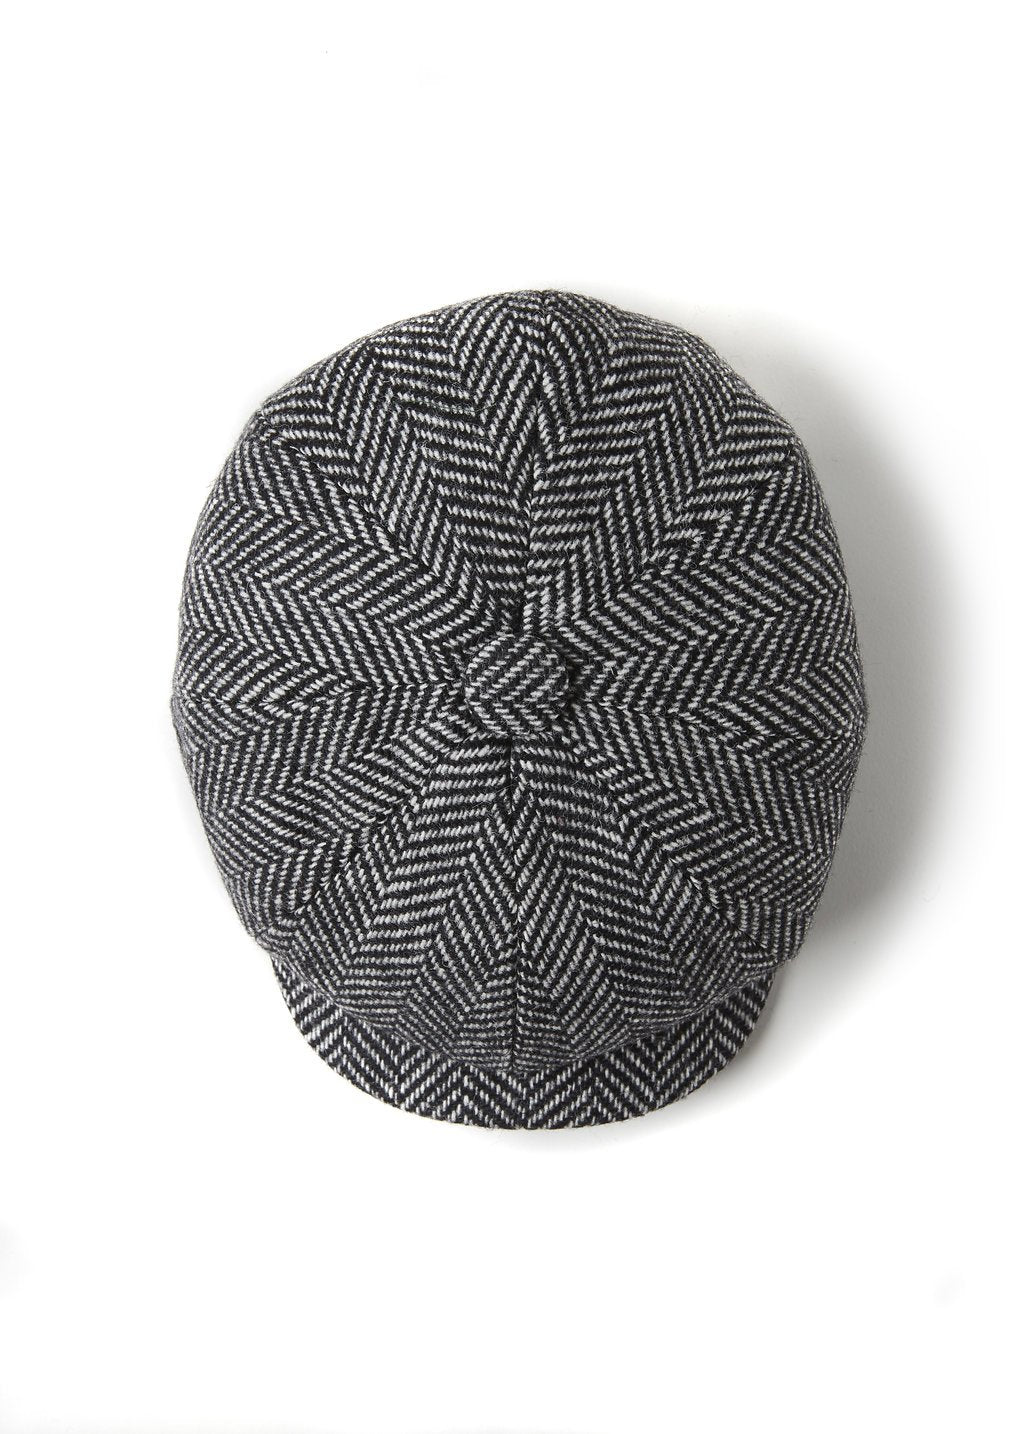 Baker Boy Cap (Wide Tooth Black Herringbone)